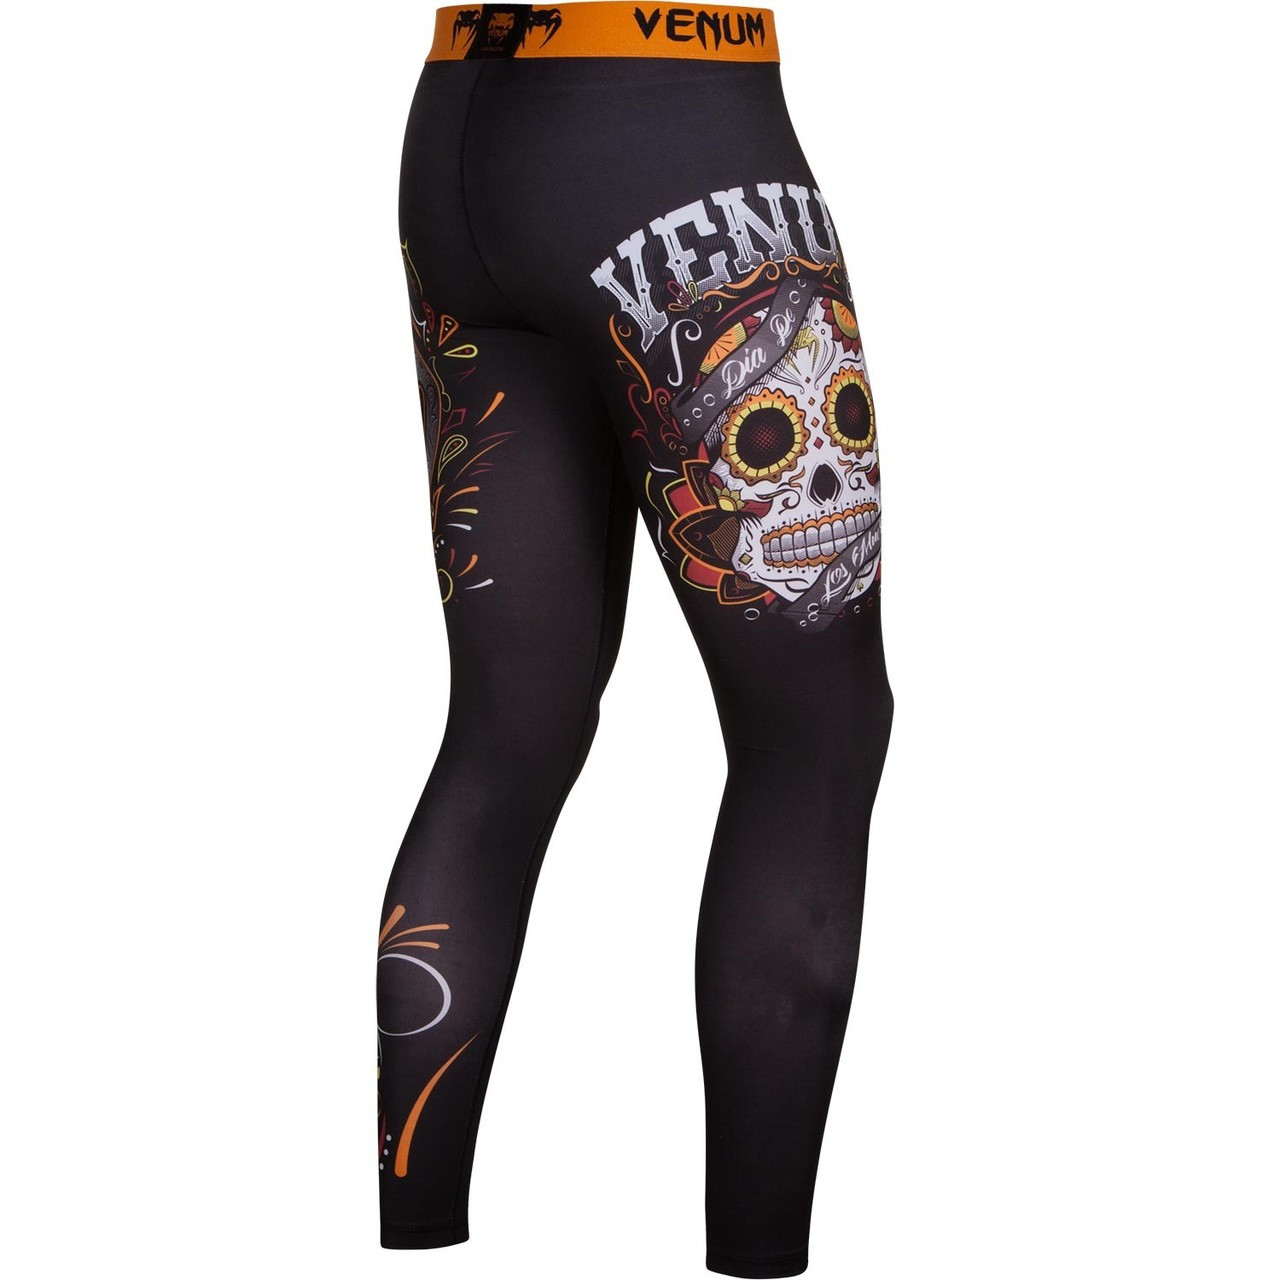 Venum Santa Muerte Spats Available at www.thejiujitsushop.com  Enjoy Free Shipping from The Jiu Jitsu Shop today!